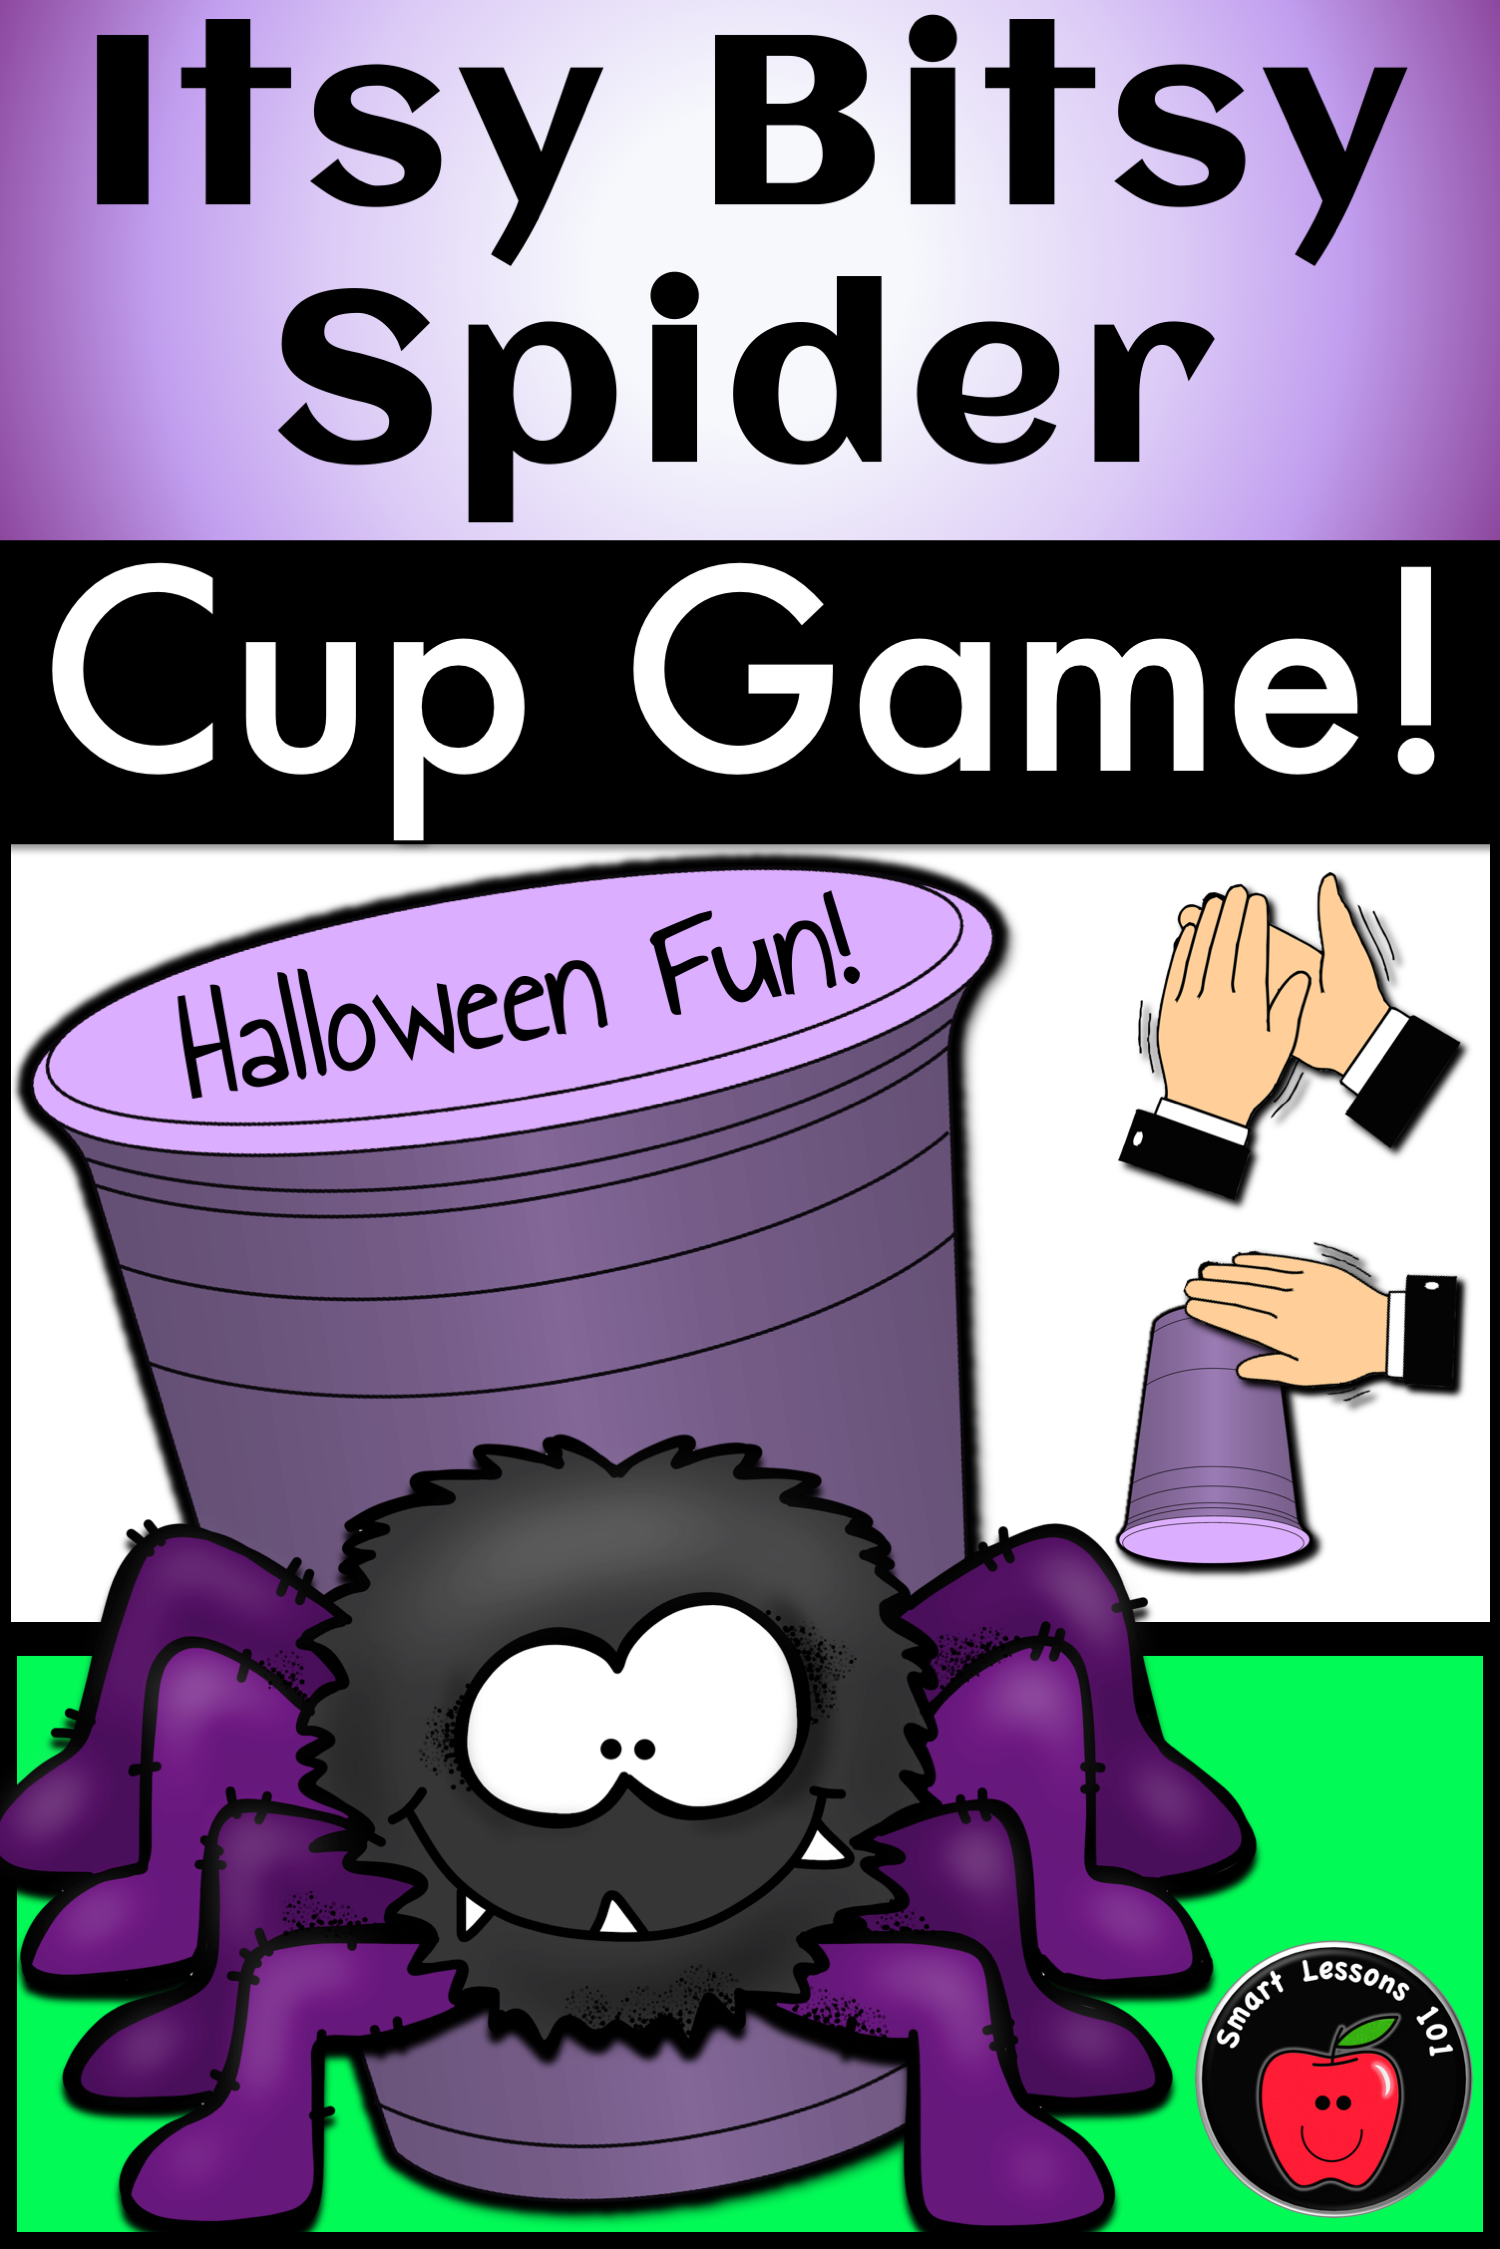 Itsy Bitsy Spider Cup Game Halloween Music Game